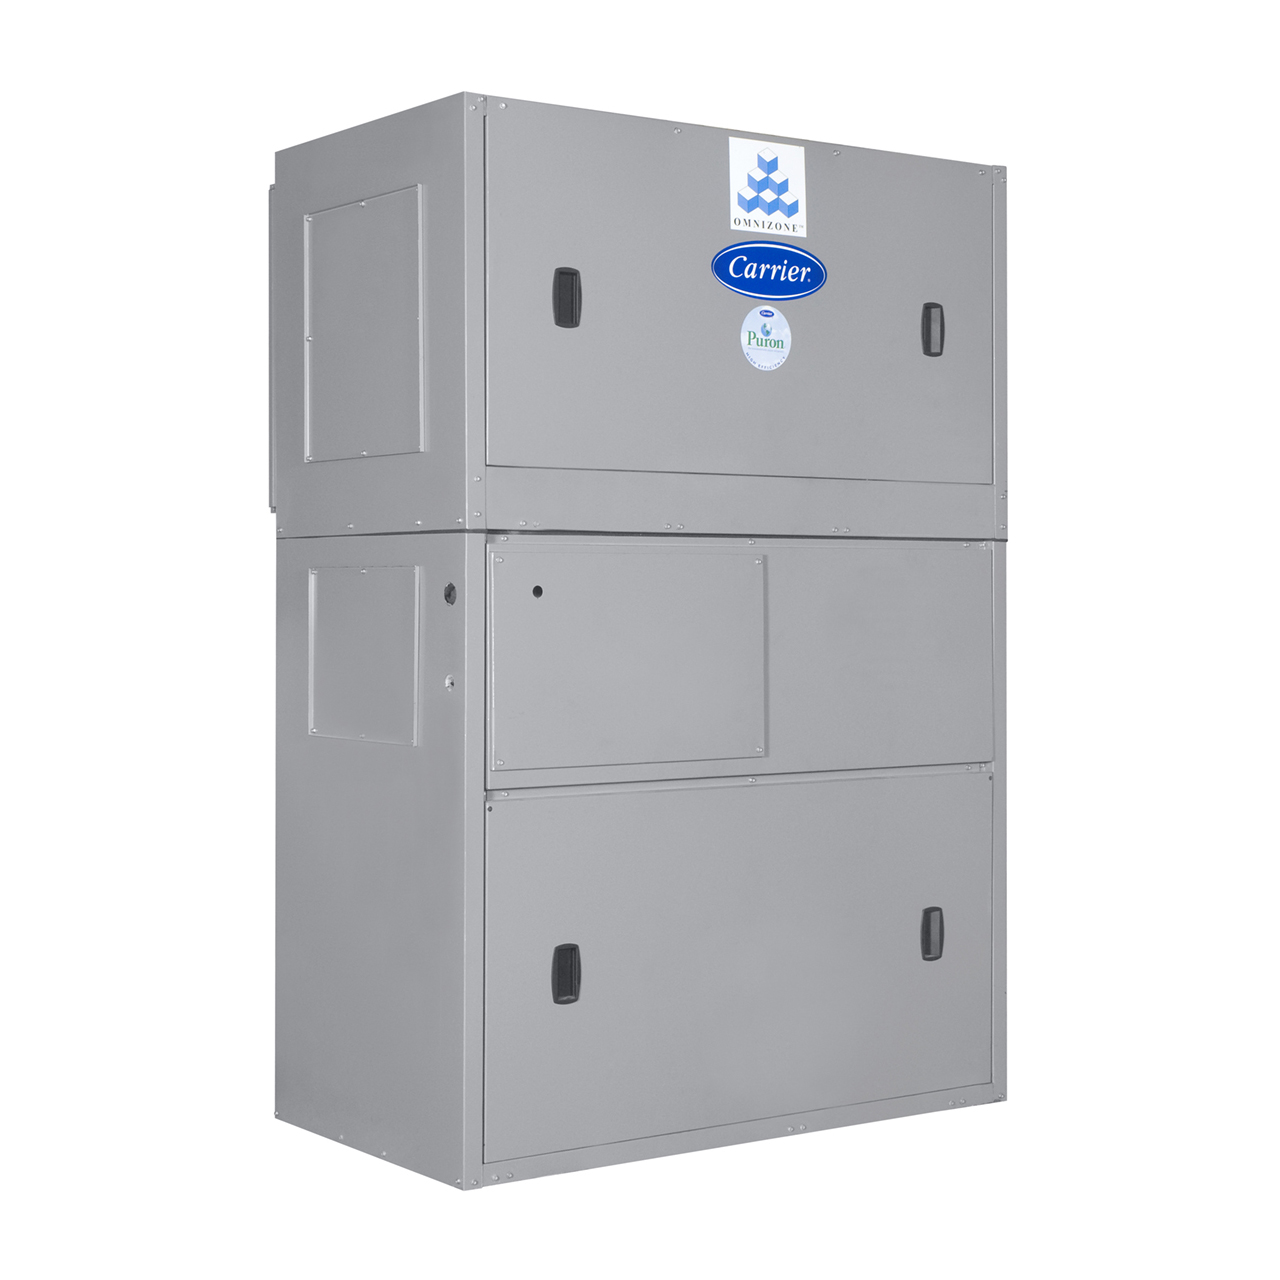 carrier-50xca-air-cooled-constant-volume-indoor-self-contained-unit